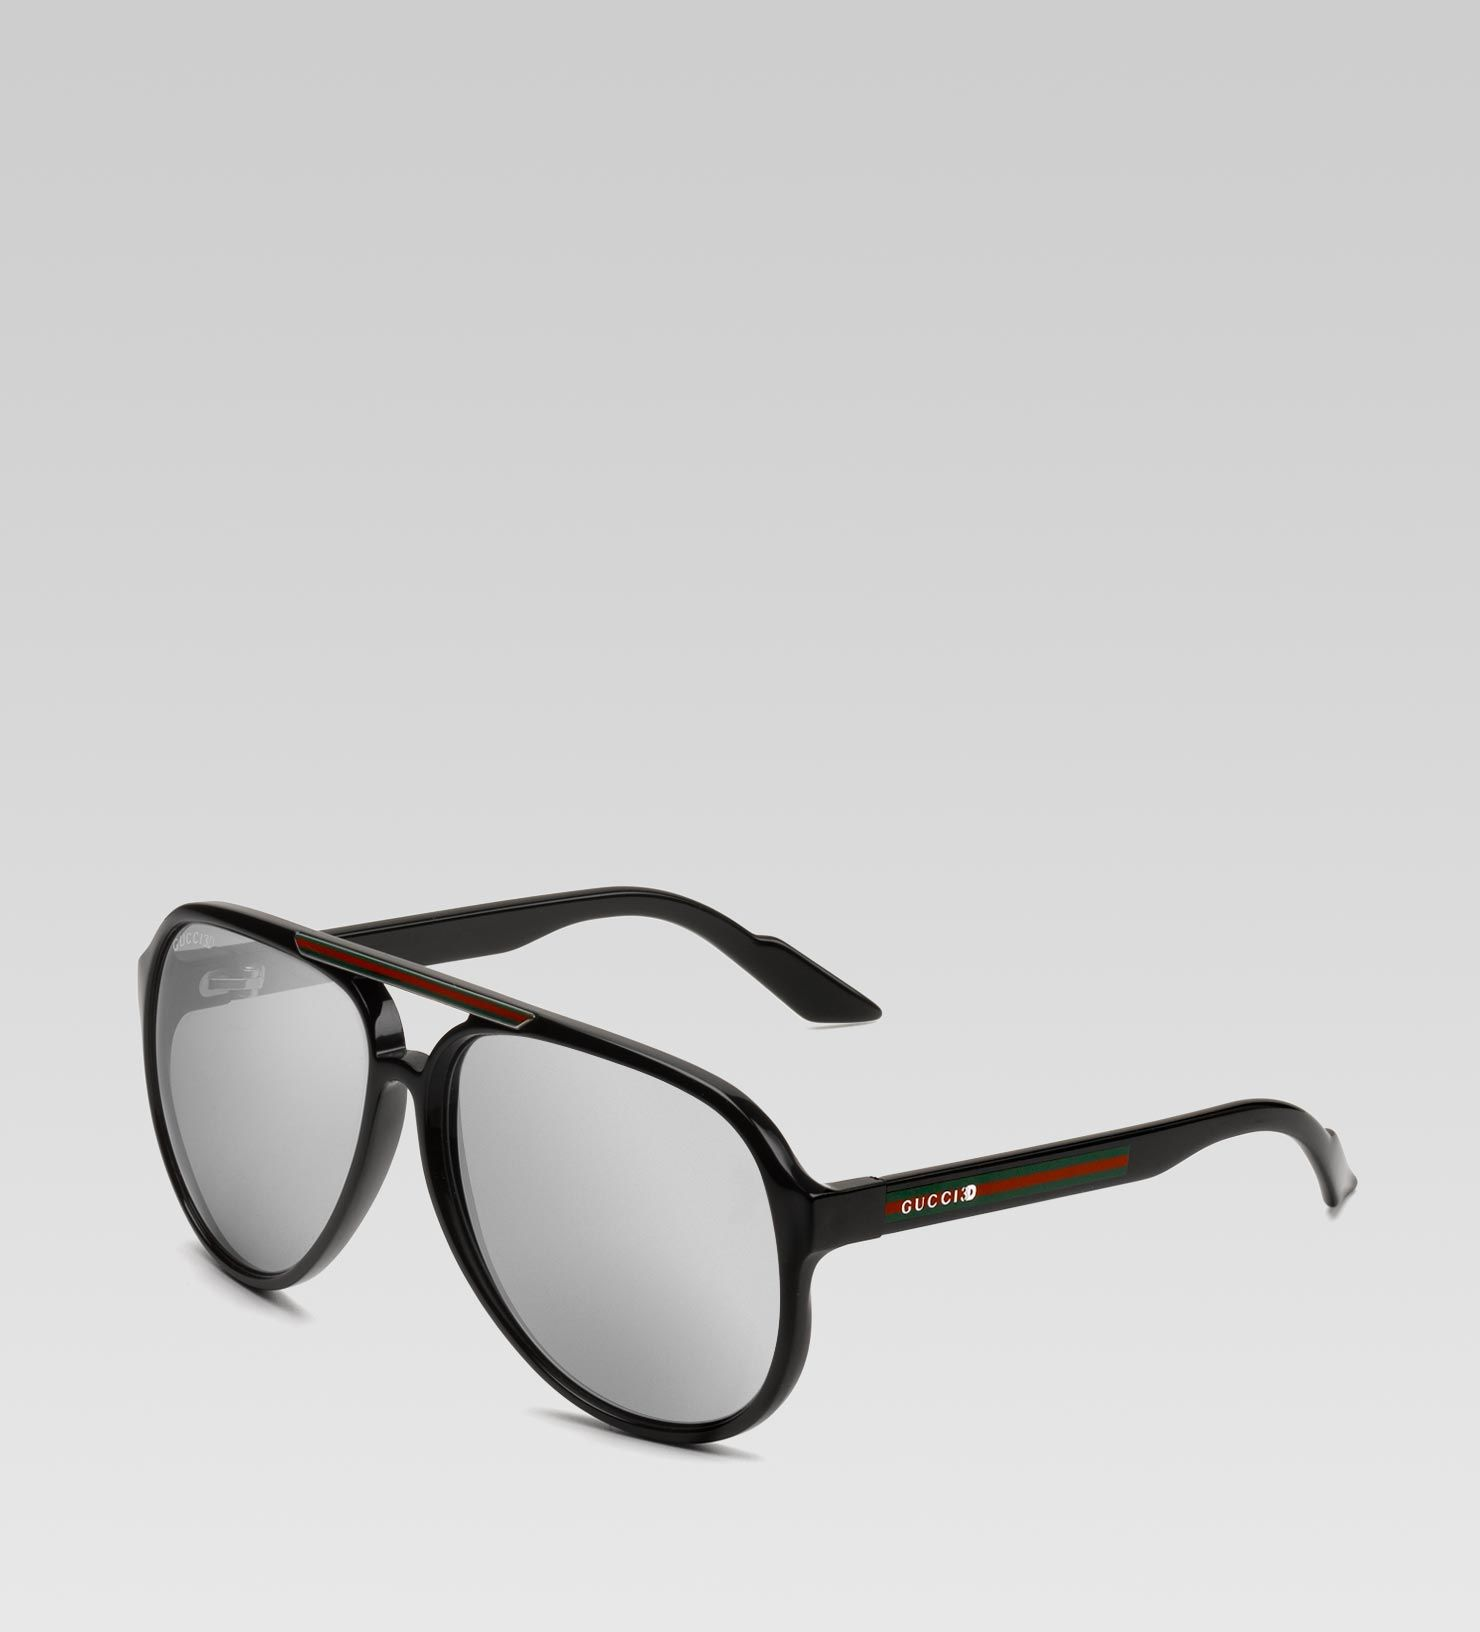 17b21adc32a Gucci mens 3D glasses with gucci 3D detail and signature web on temple 1  600x661